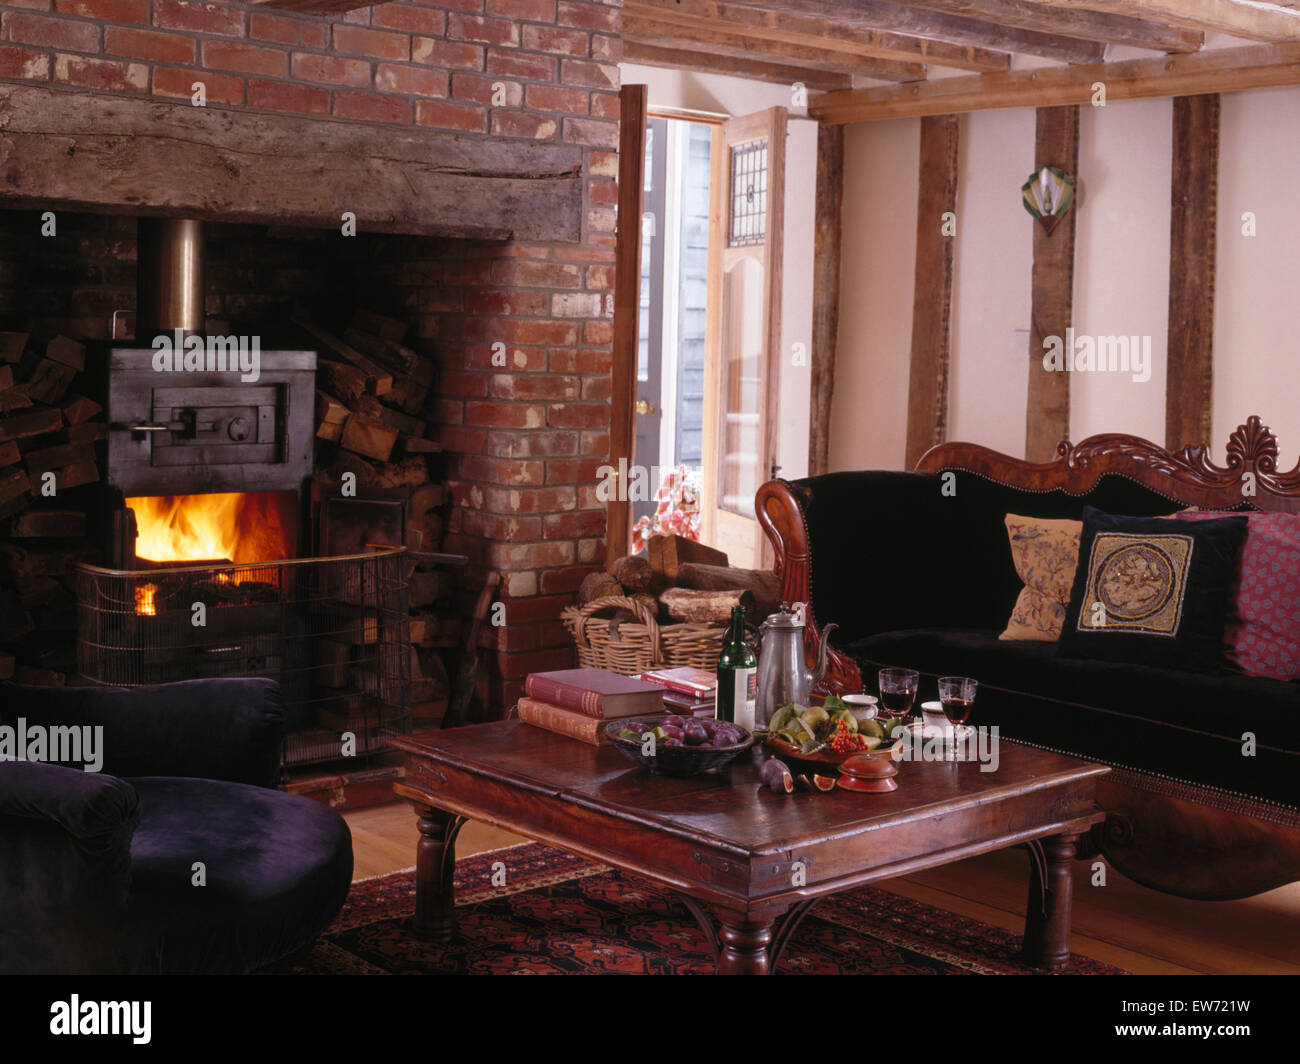 Wood Burning Stove In Inglenook Fireplace Very Traditional